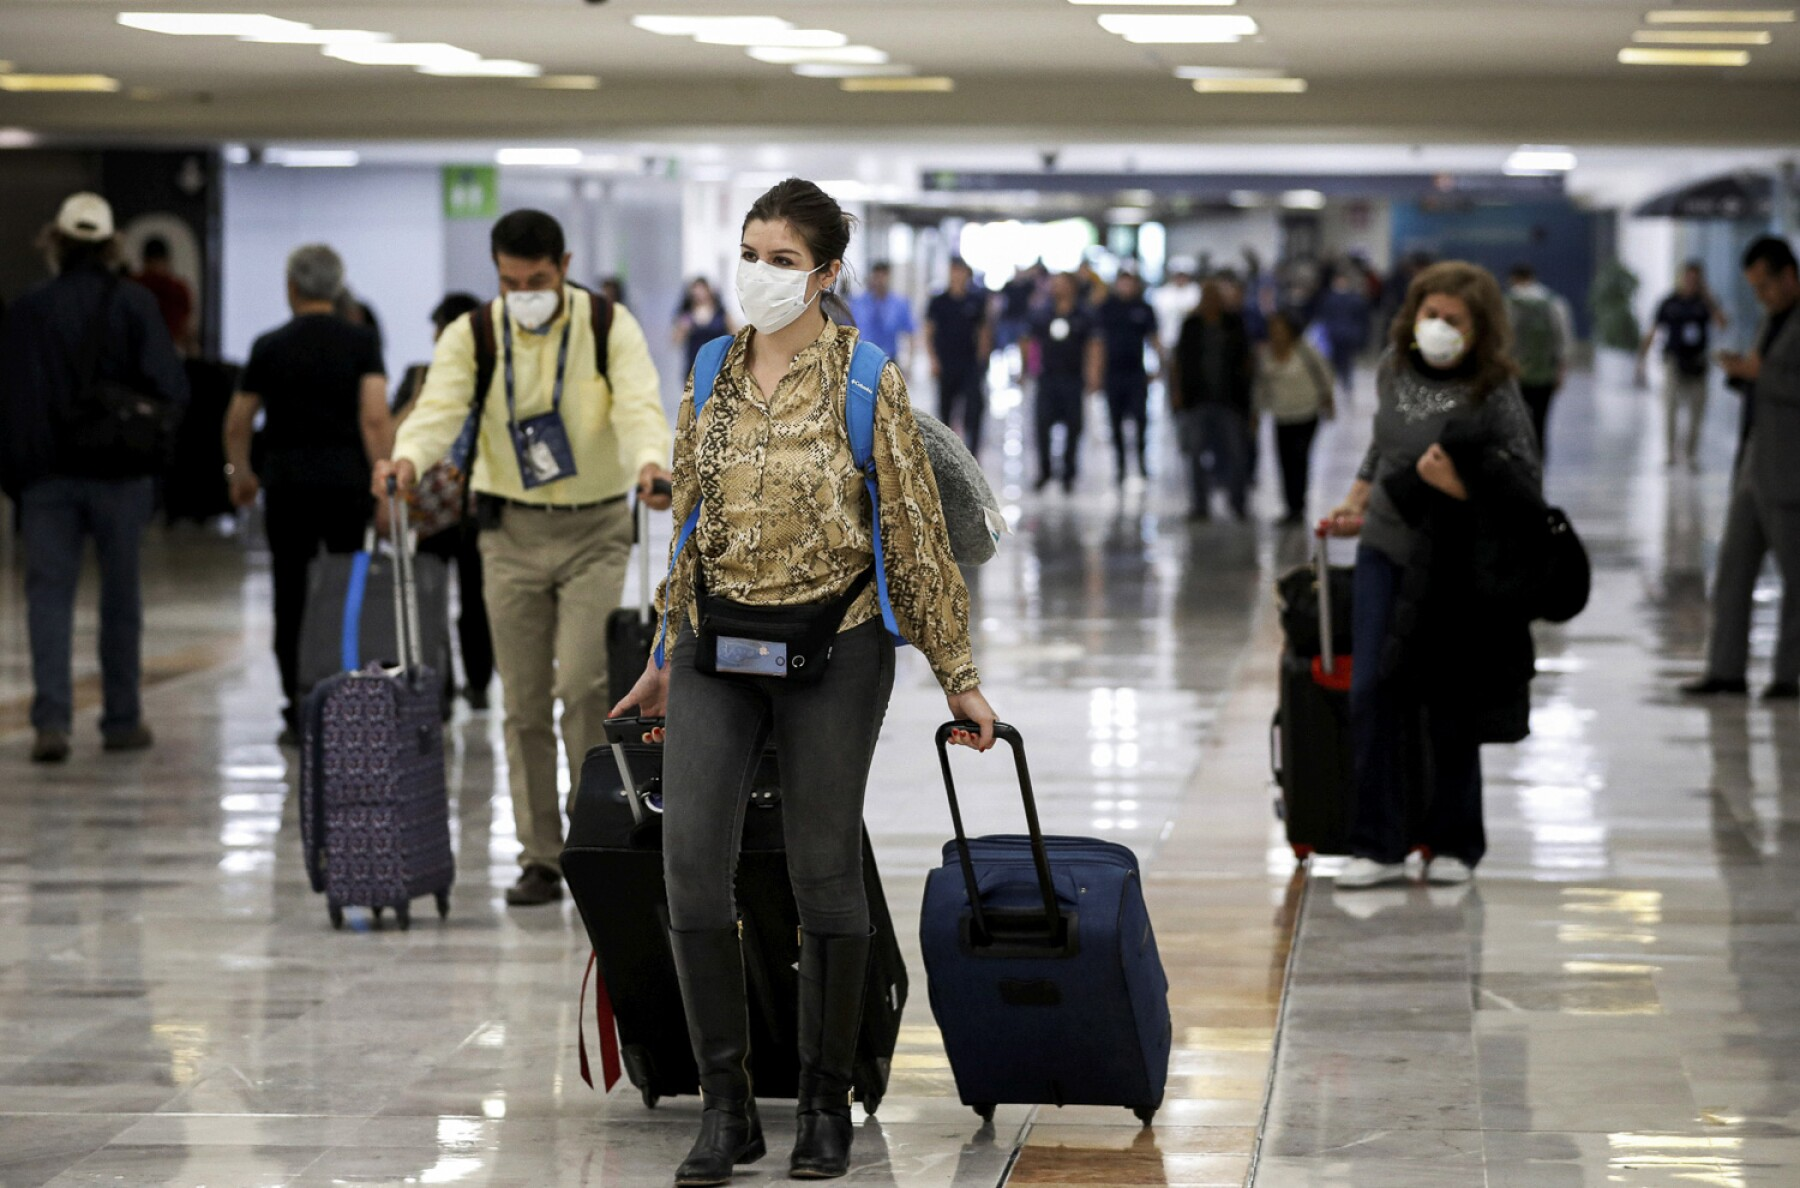 A stranded Peruvian tourist checks his phone at Cancun International Airport amid travel restrictions due to the outbreak of coronavirus disease (COVID-19) in Mexico